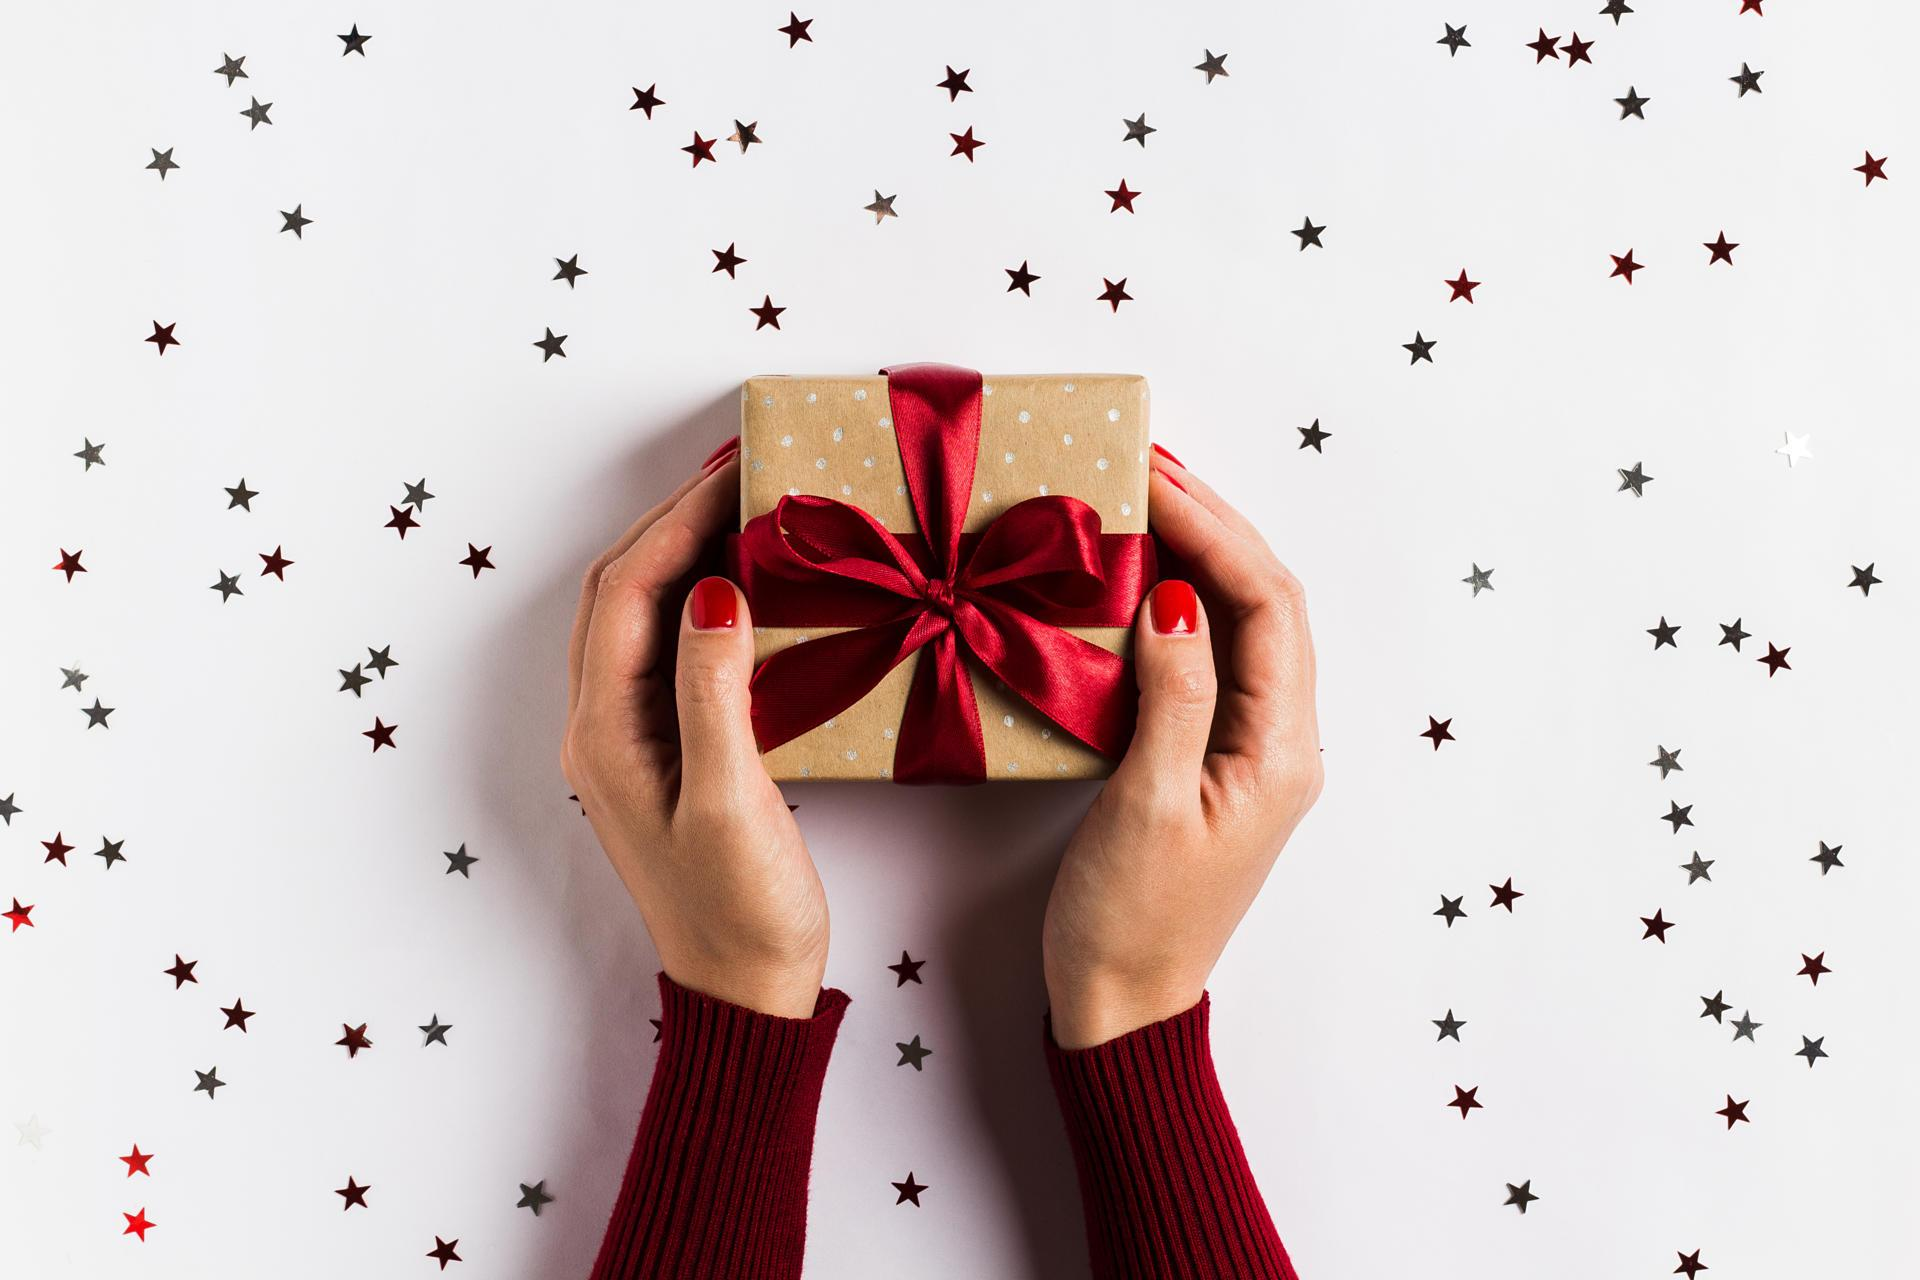 woman-hands-holding-christmas-holiday-gift-box-on-decorated-festive-table.jpg